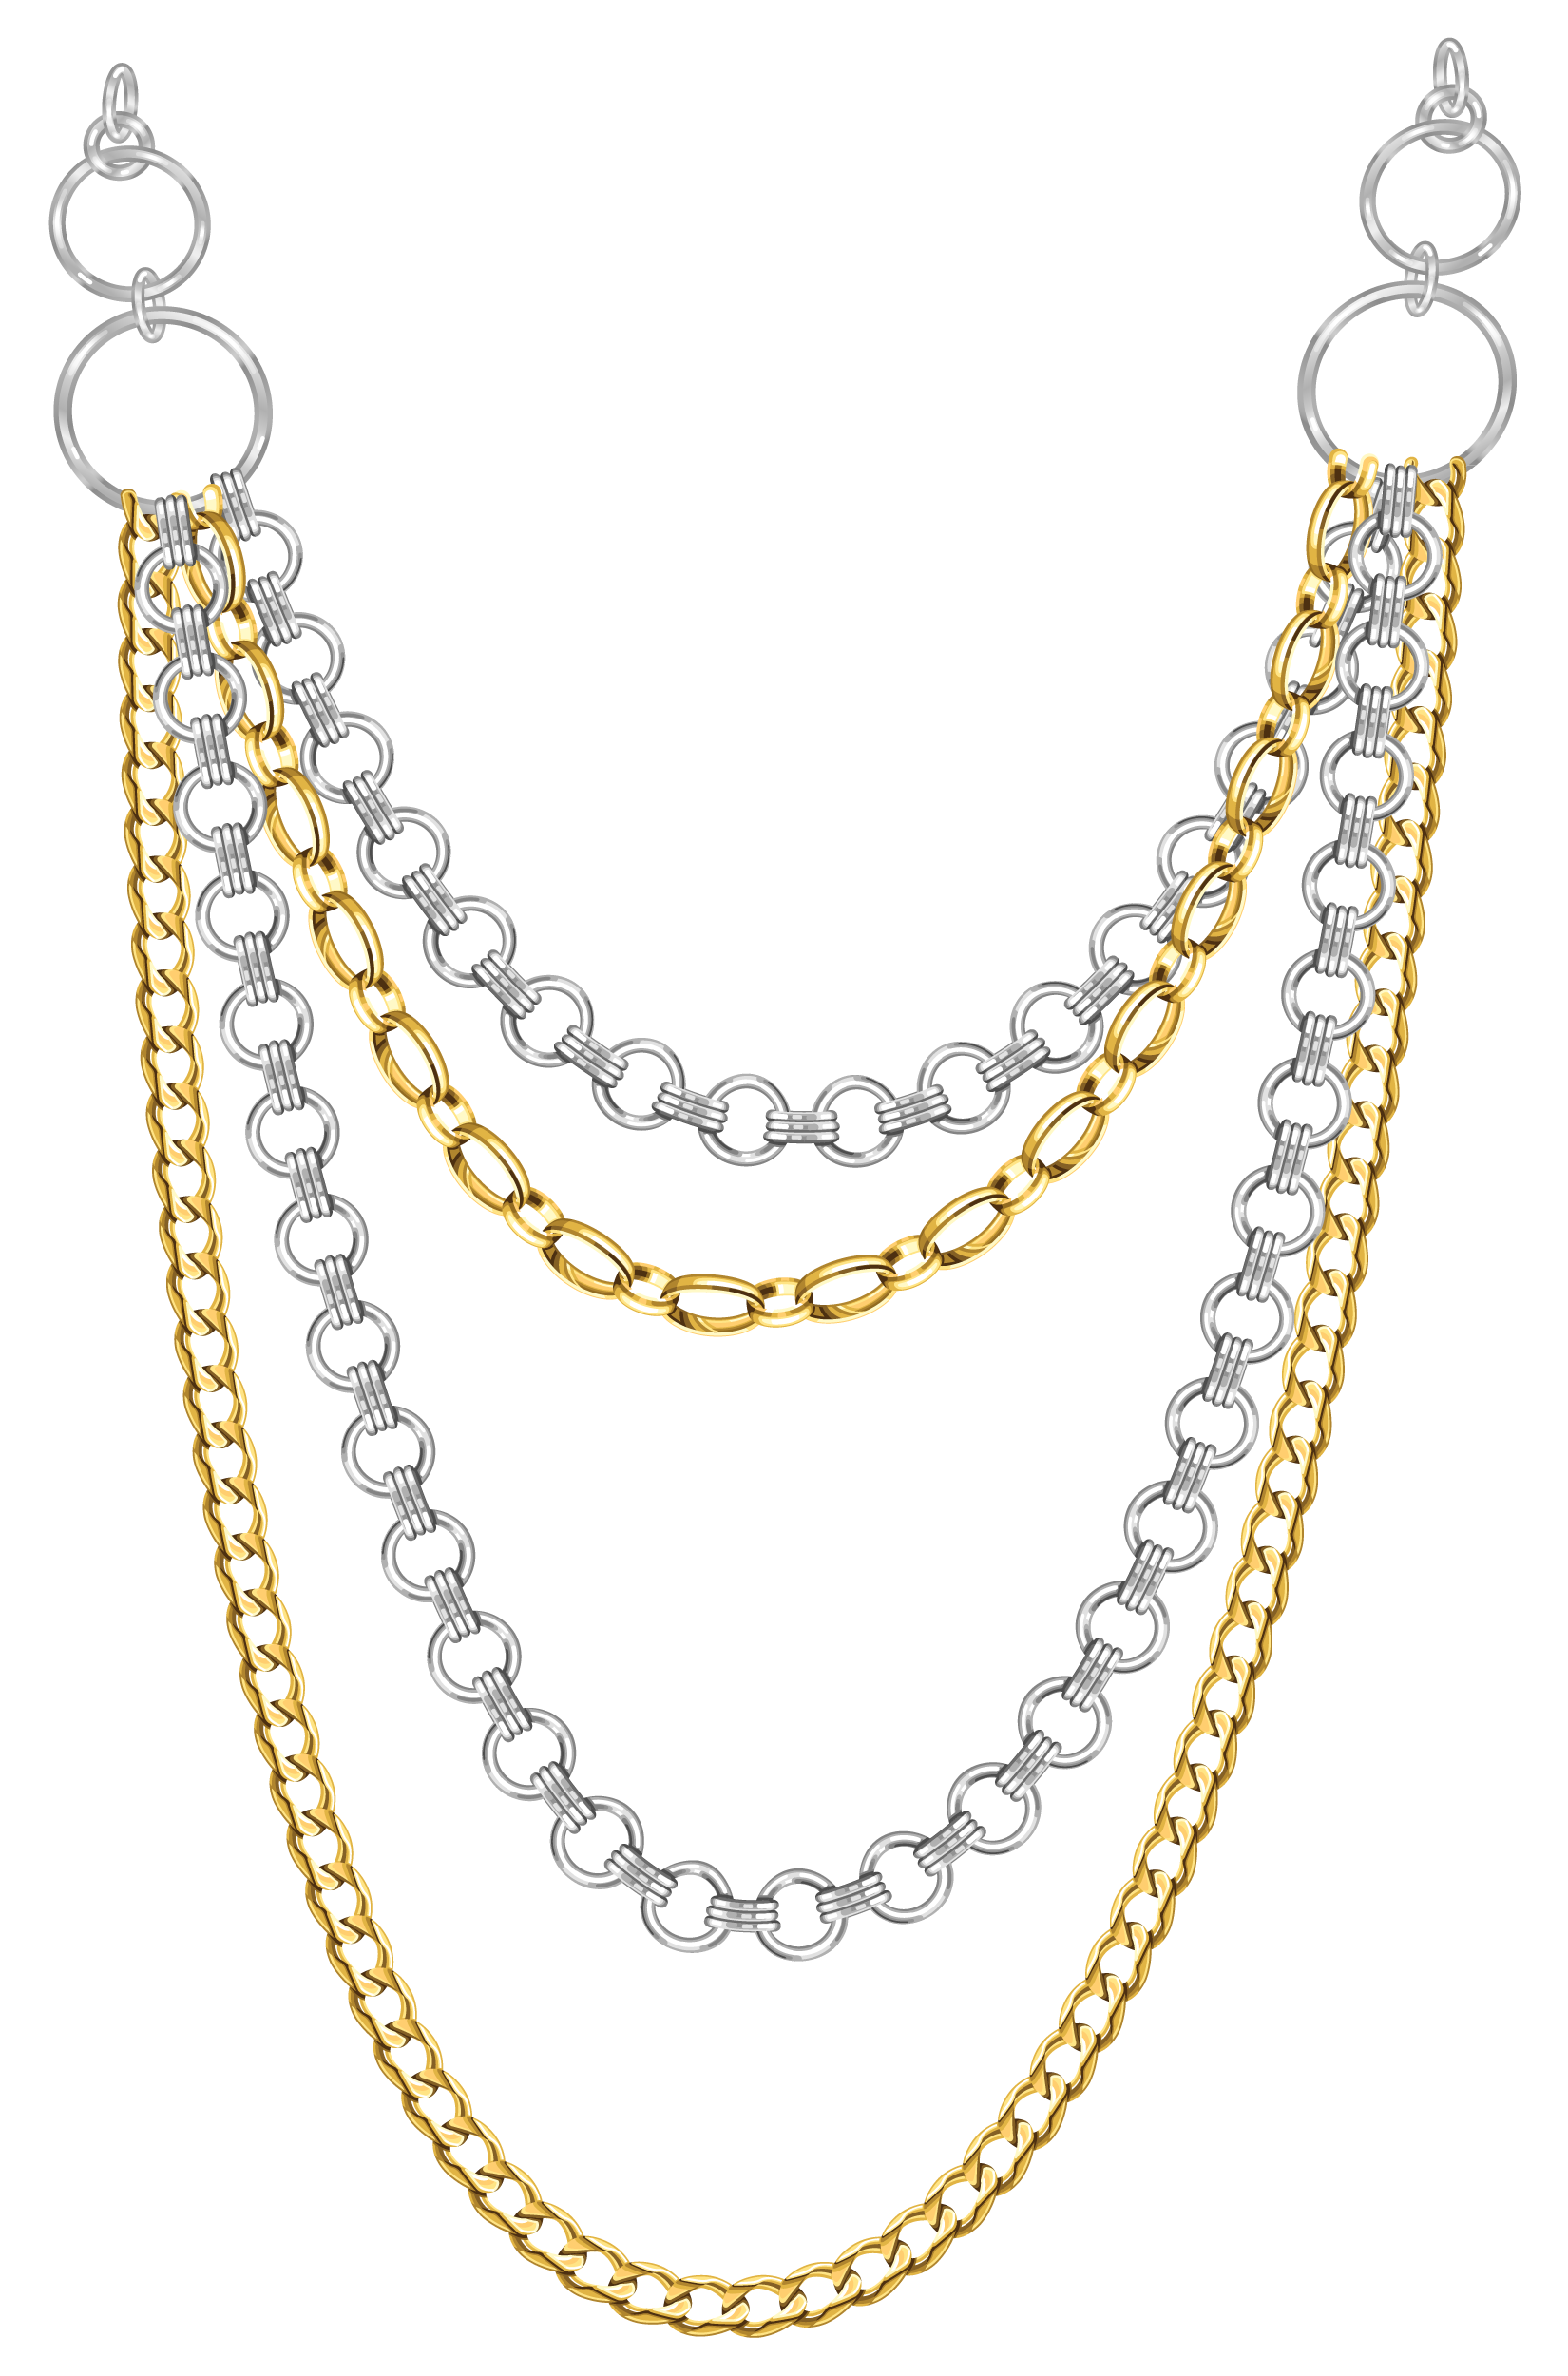 types galery chains saveenlarge l of pinterest necklace chain jewelry silver traumspuren link